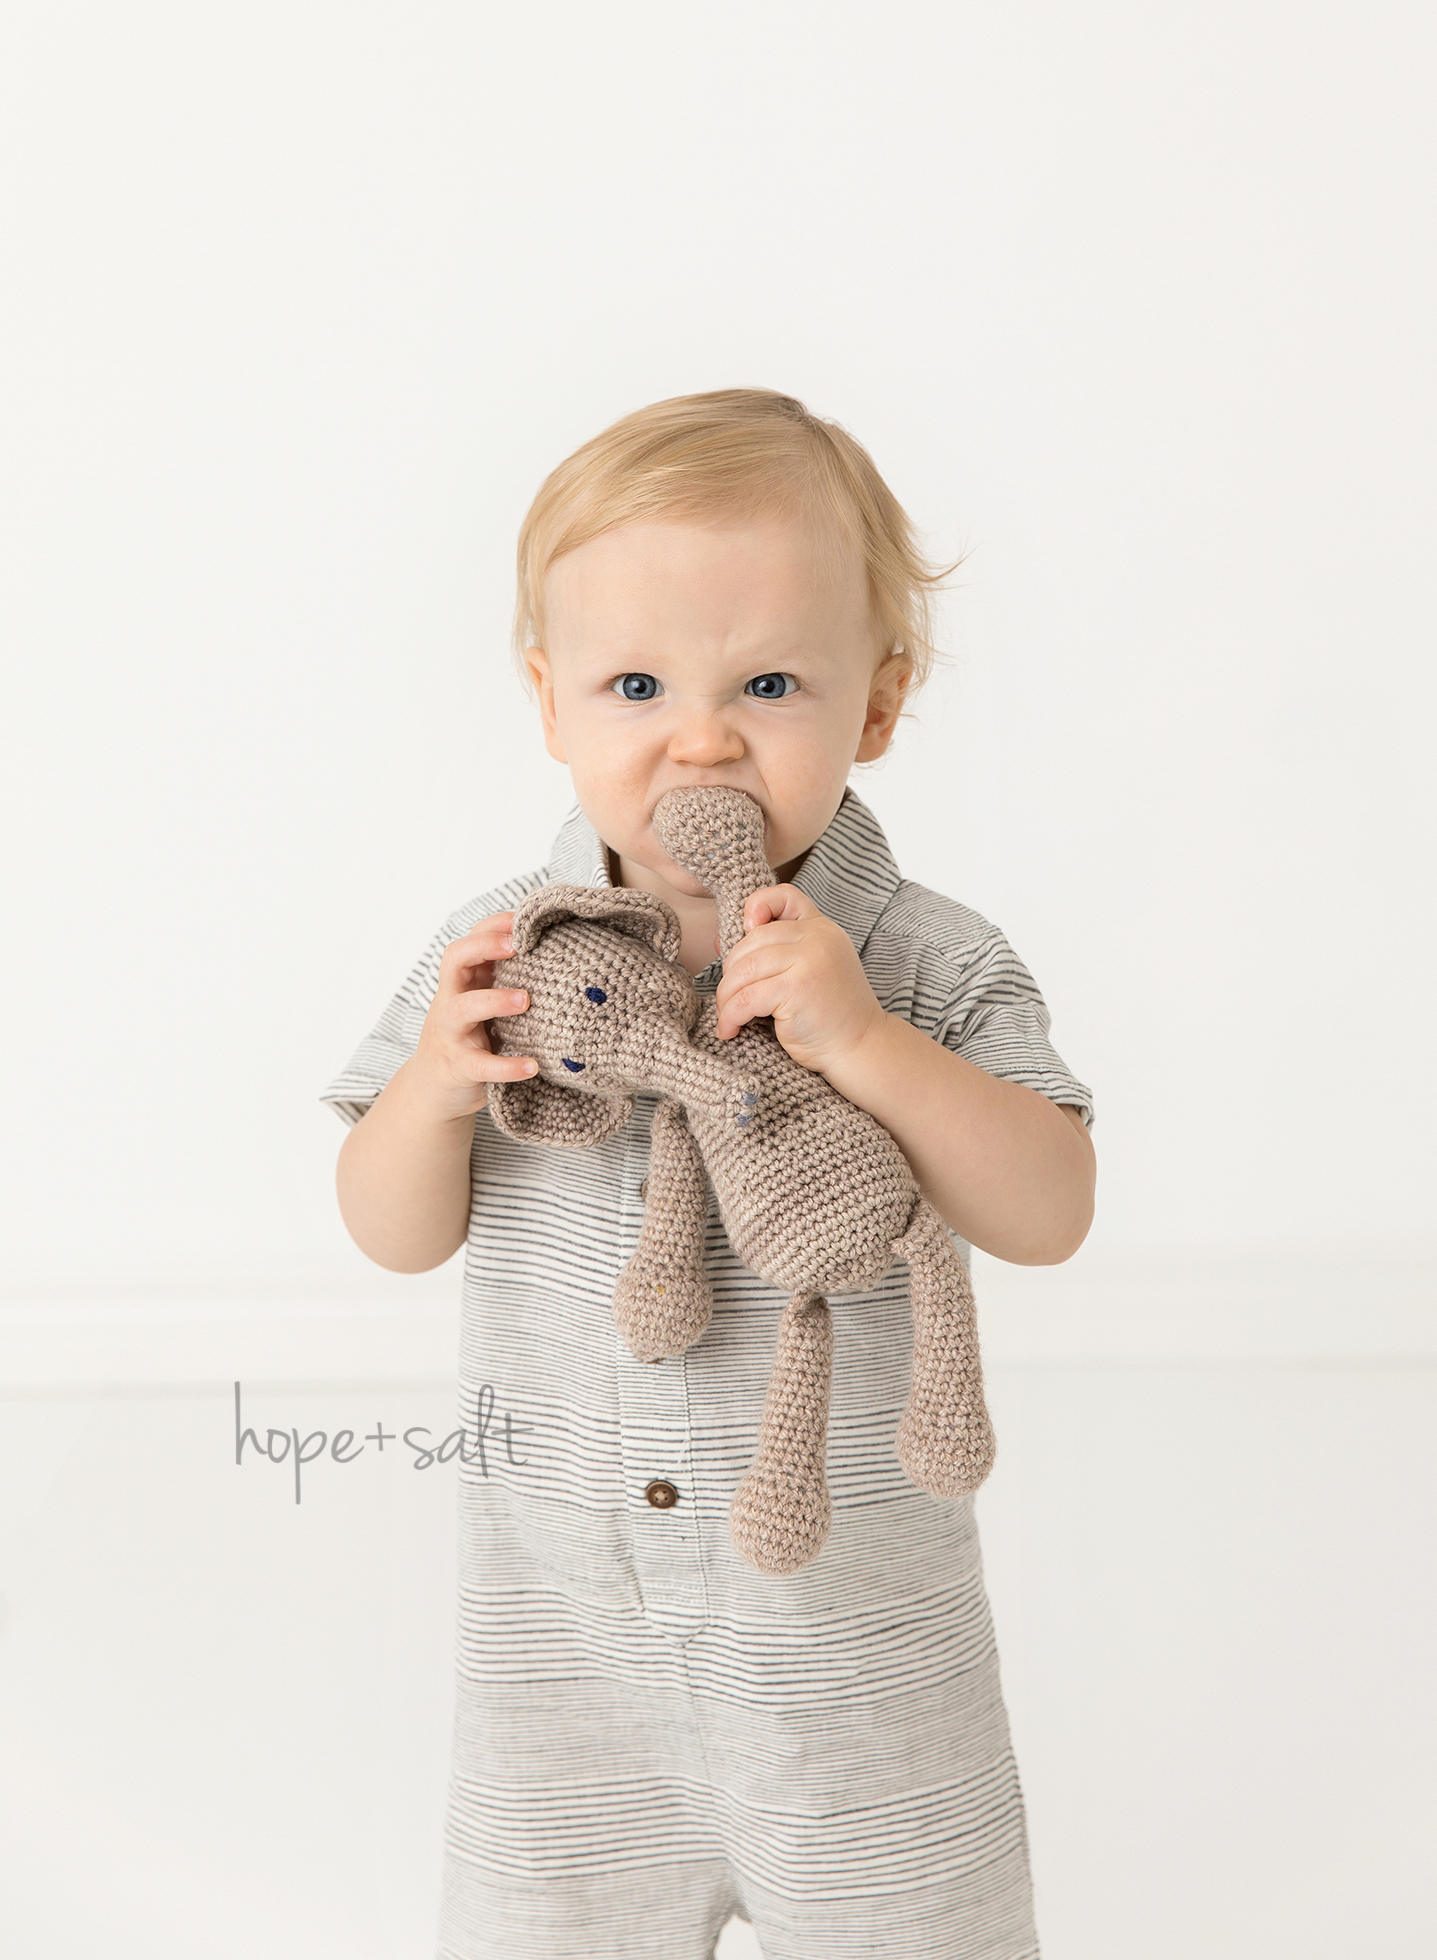 first birthday studio session for one year old boy Braden in candid natural all whites style by Burlington Ontario Canada baby Photographer hope and salt including his elephant stuffed animal lovie